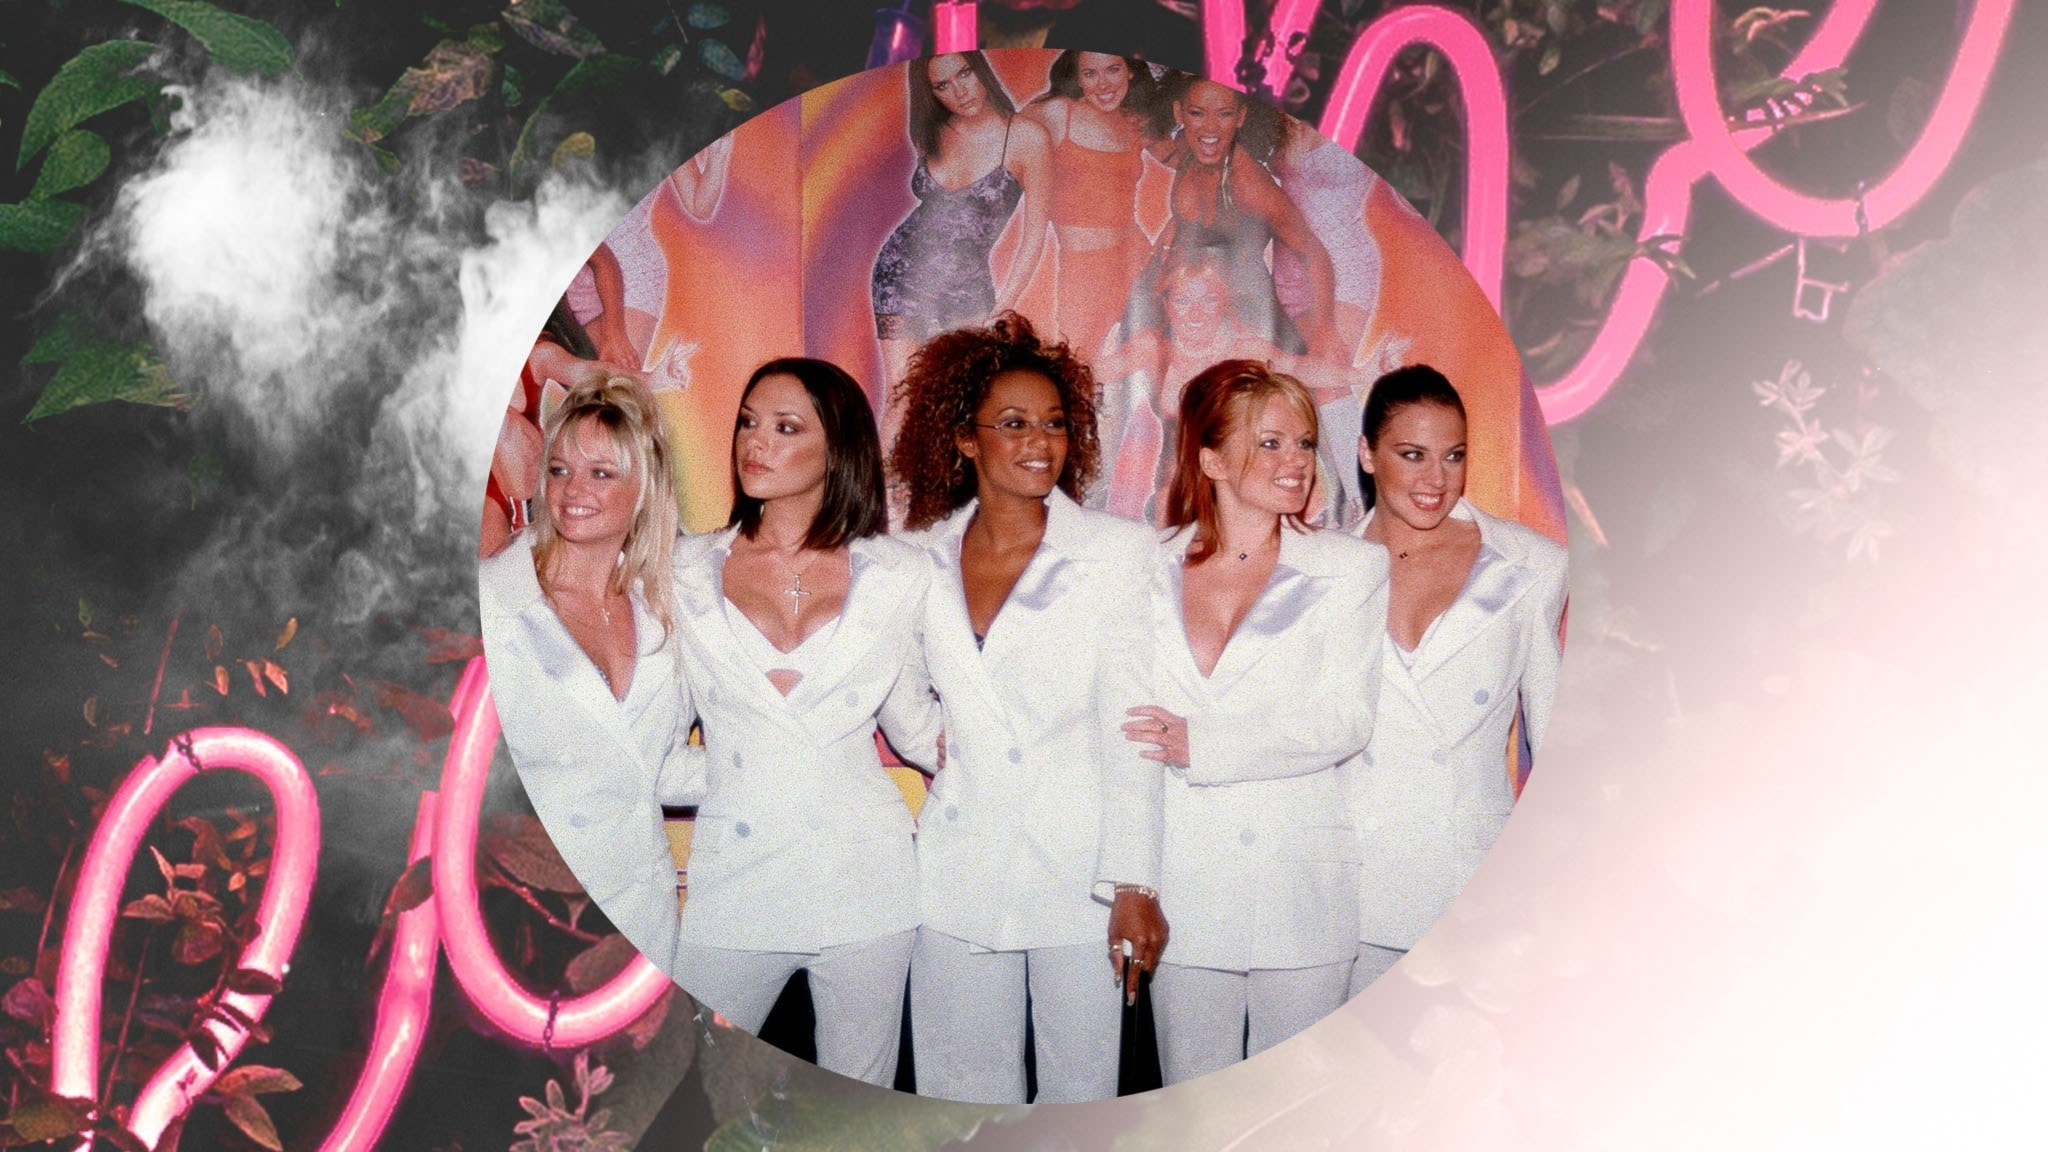 Spice Girls – Svek, frigörelse och girl power